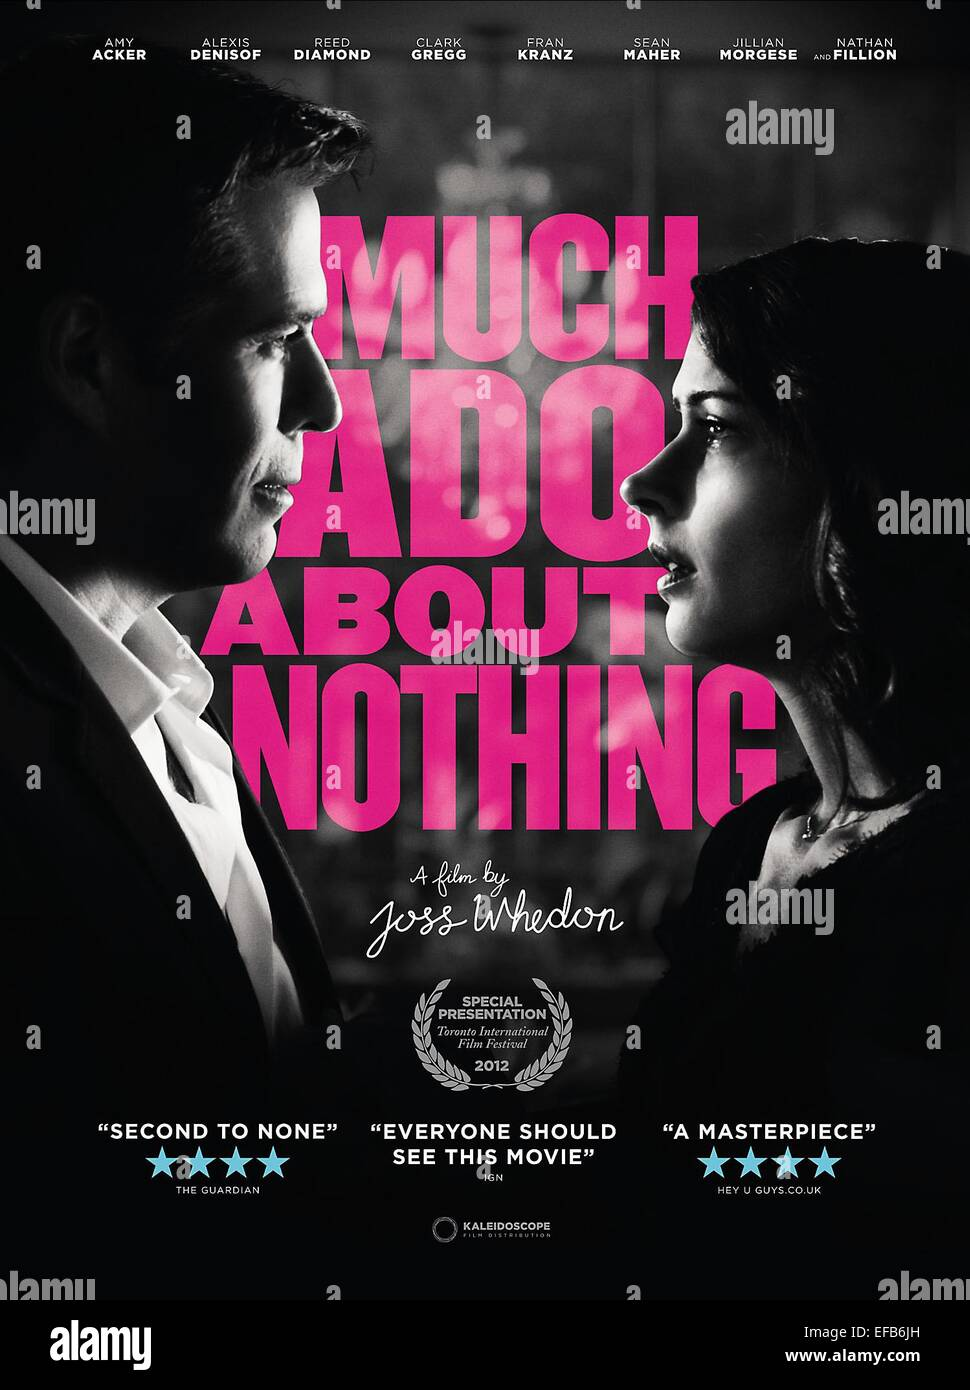 MOVIE POSTER MUCH ADO ABOUT NOTHING (2012) Stock Photo